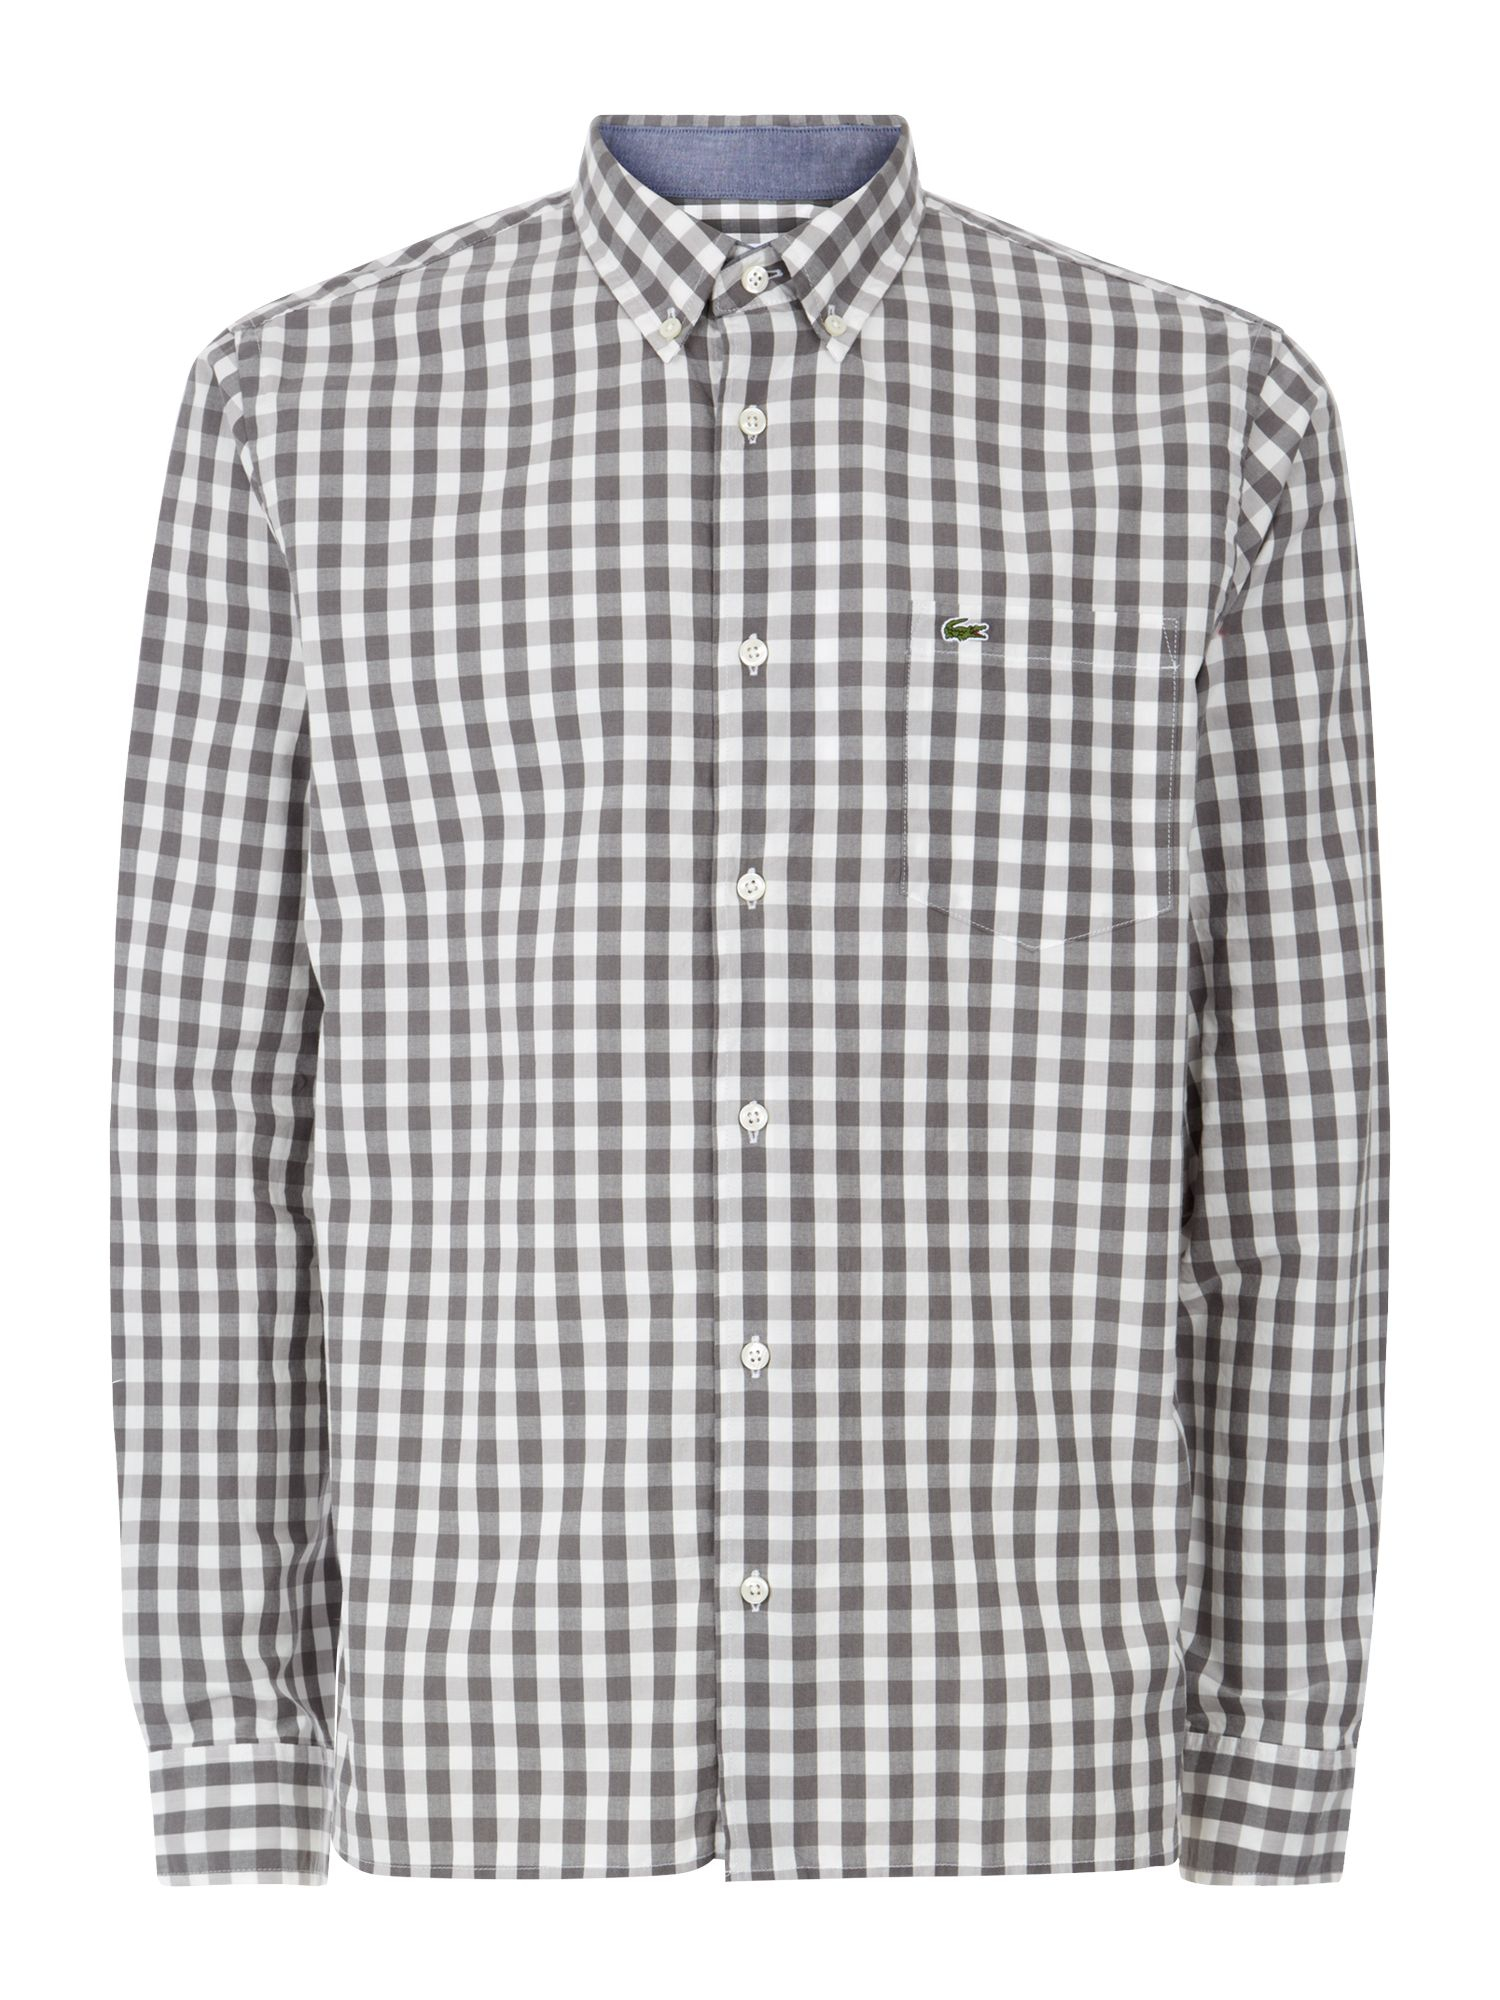 lacoste large gingham check shirt in gray for men lyst